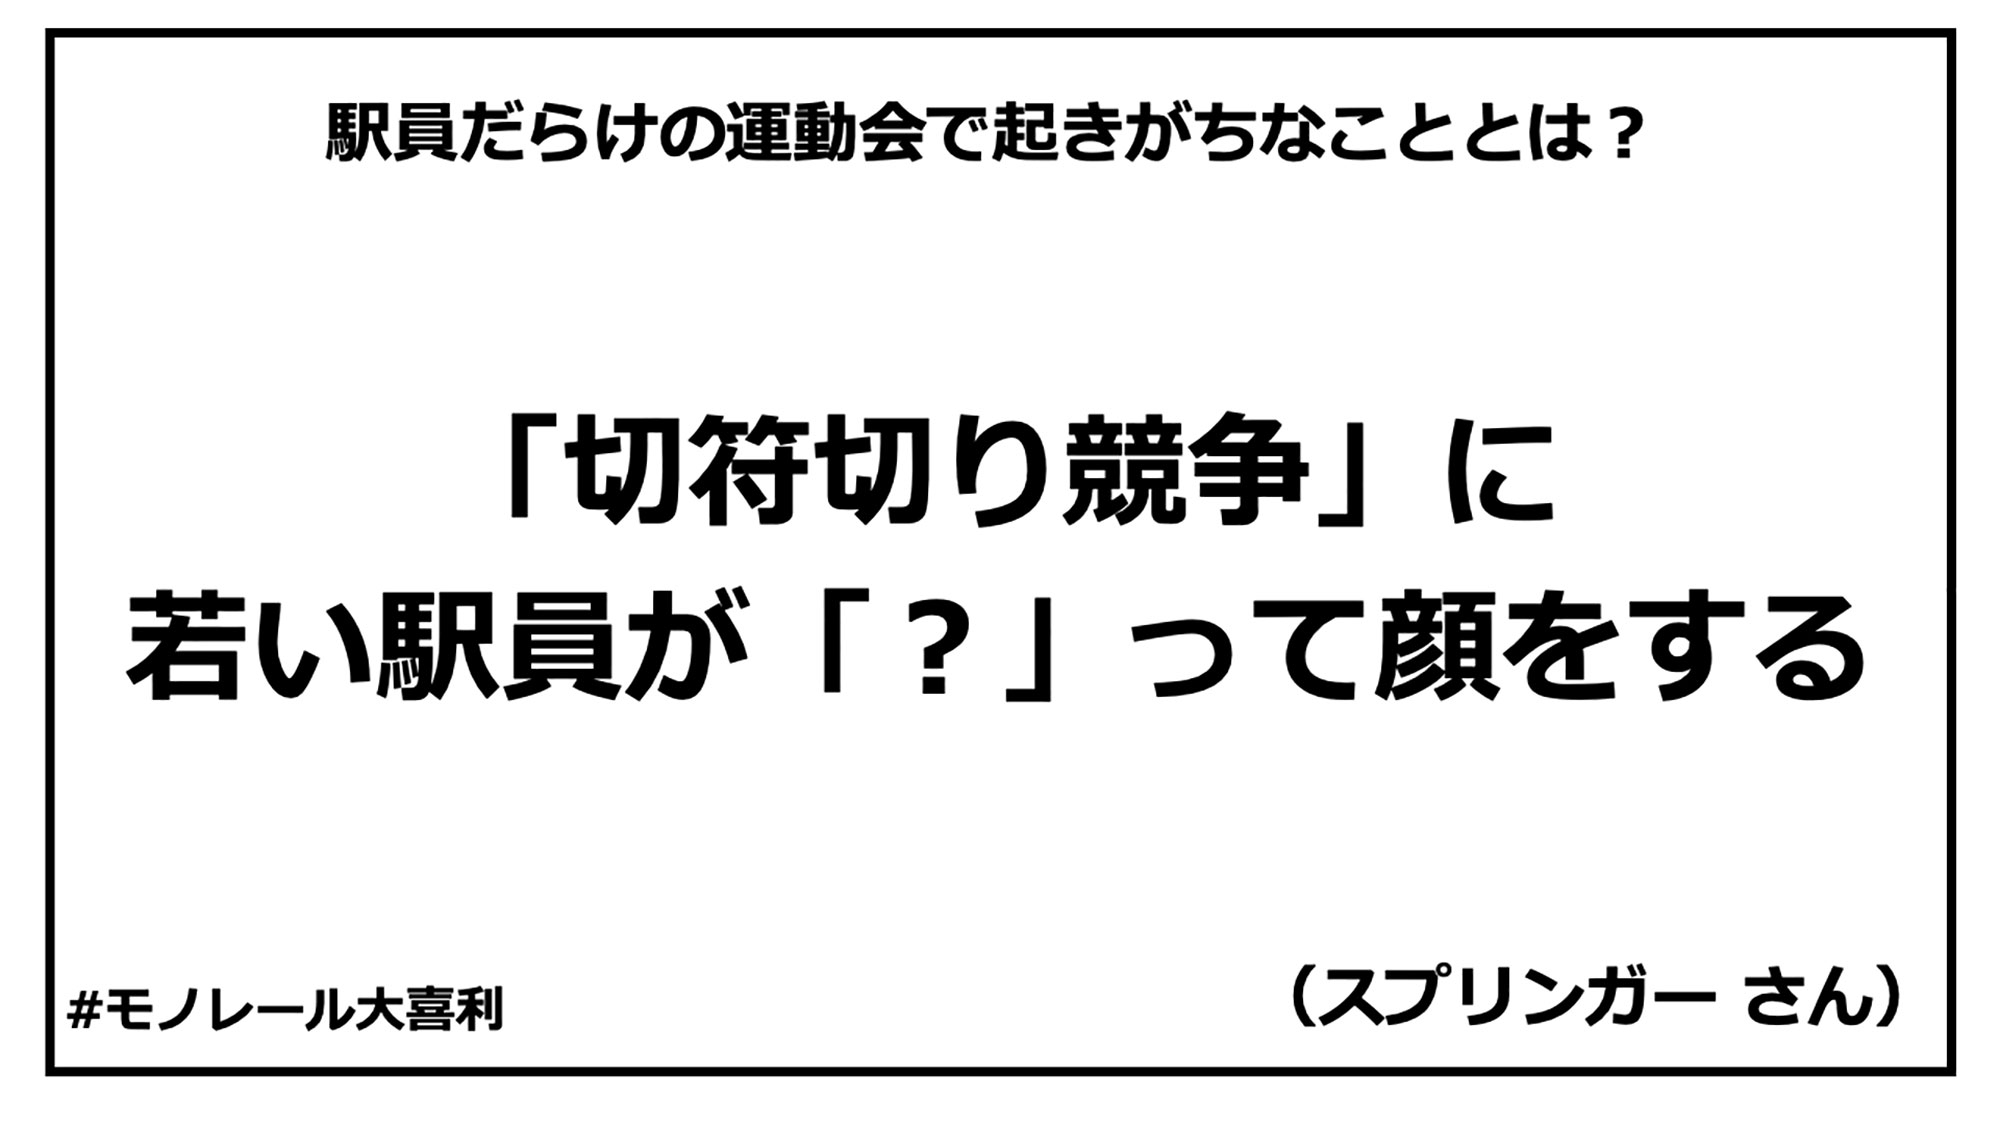 ogiri_answer_30_9.jpg